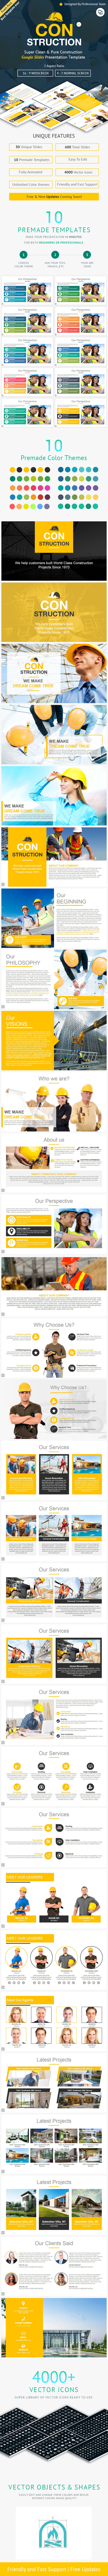 Construction Google Slides Presentation Template - Google Slides Presentation Templates